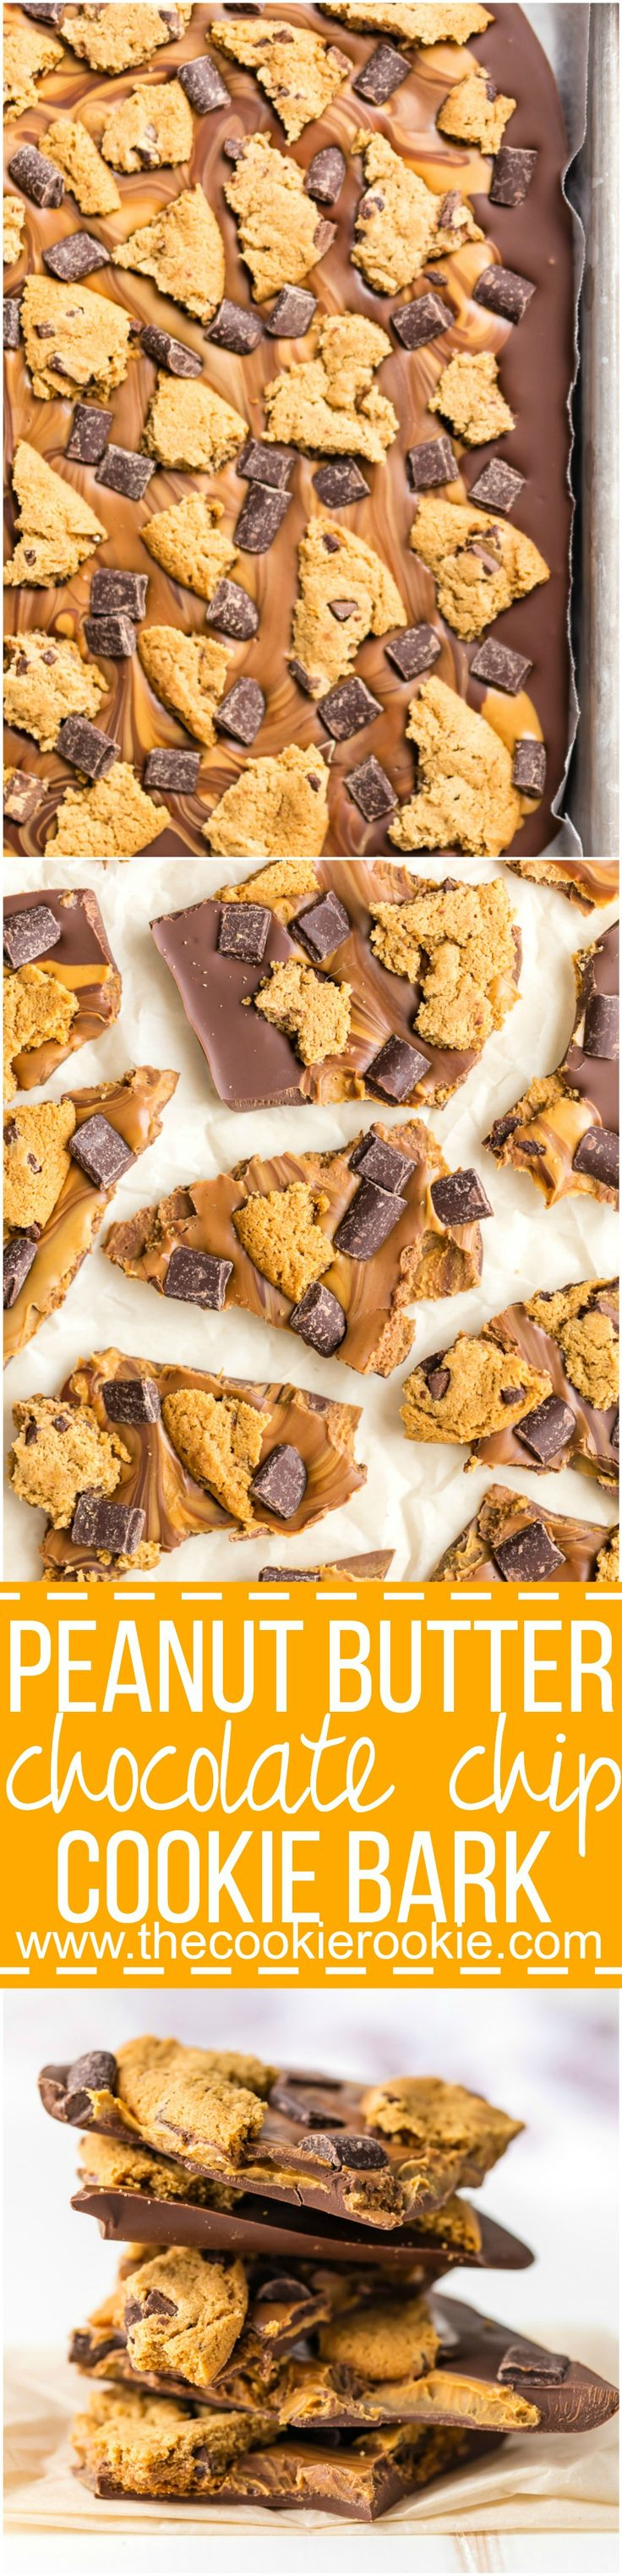 Peanut Butter Chocolate Chip Cookie Bark easy dessert recipe! Only 4 ingredients Loaded with peanut butter, milk chocolate, dark chocolate chunks, and chocolate chip cookies!